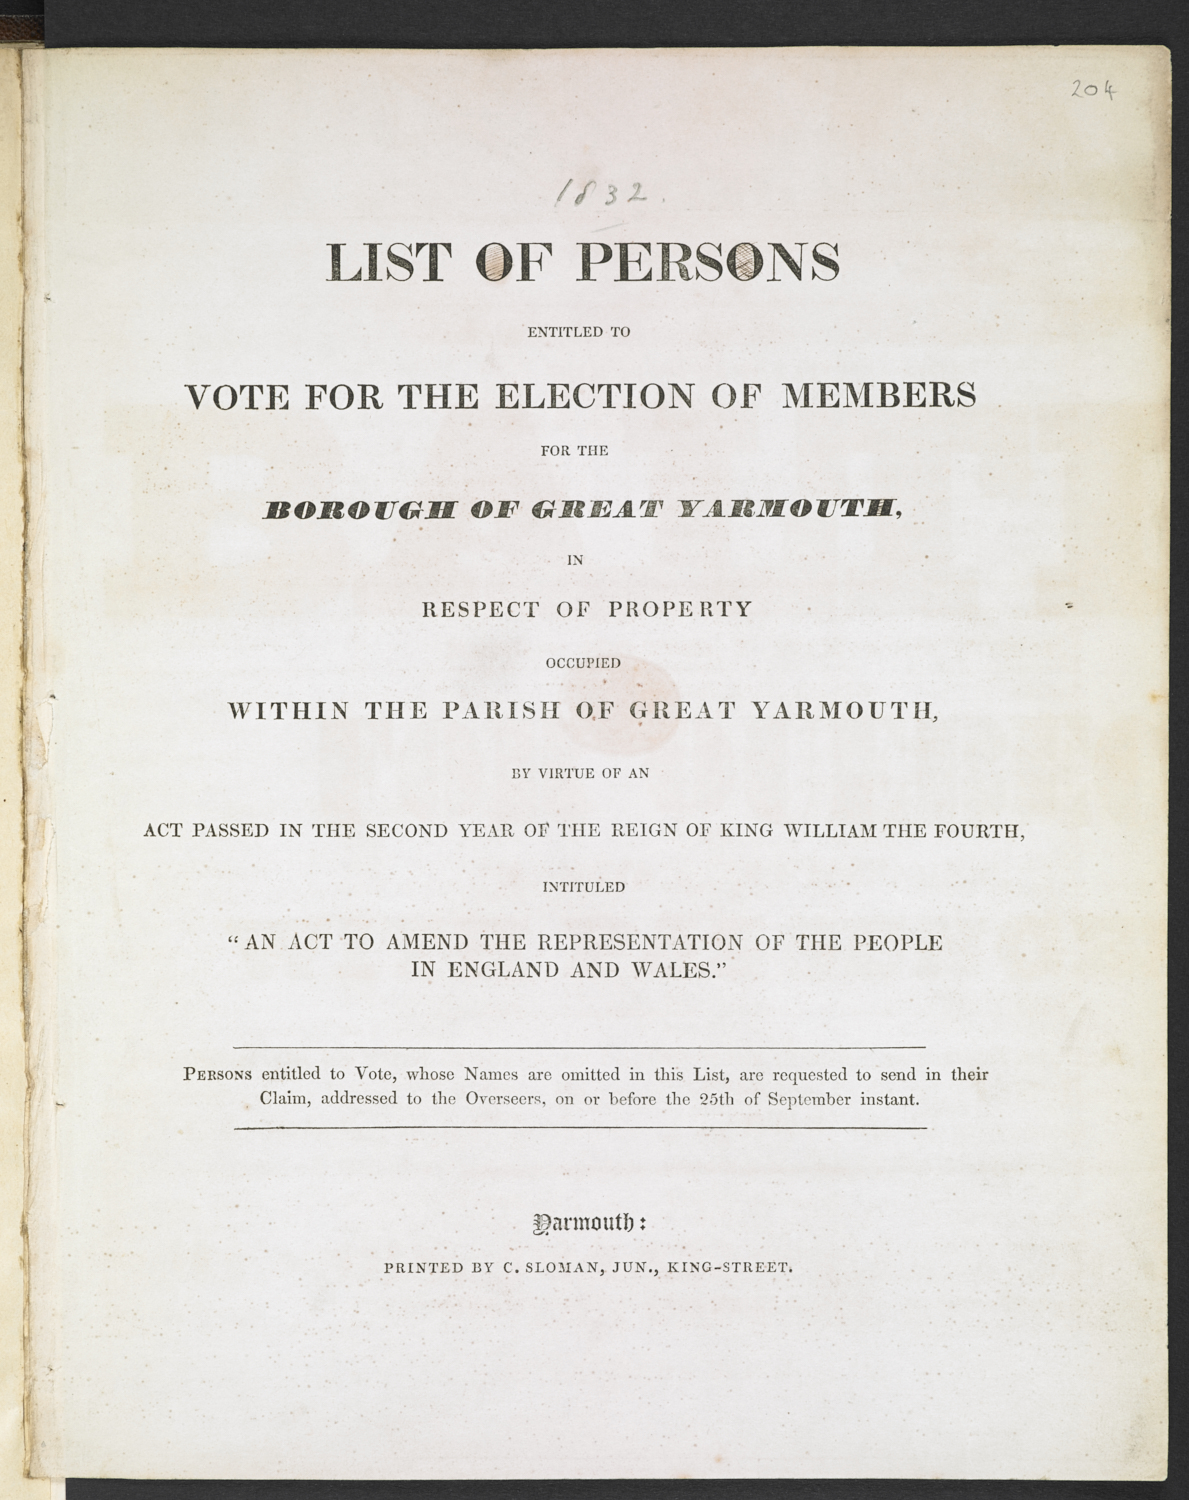 "List of persons entitled to vote for the election of members for the borough of Great Yarmouth, in respect of property occupied within the parish of Great Yarmouth, by virtue of an act passed in the second year of King William the Fourth, intituled ""An Act to Amend the Representation of the People in England and Wales"". Persons entitled to vote, whose names are omitted in this list, are requested to send in their claim, addressed to the overseers, on or before the 25th of September instant, printed by C. Sloman, King Street, Yarmouth, [1832], 28 cm,  N.Tab.2012/6(1i) (204)"